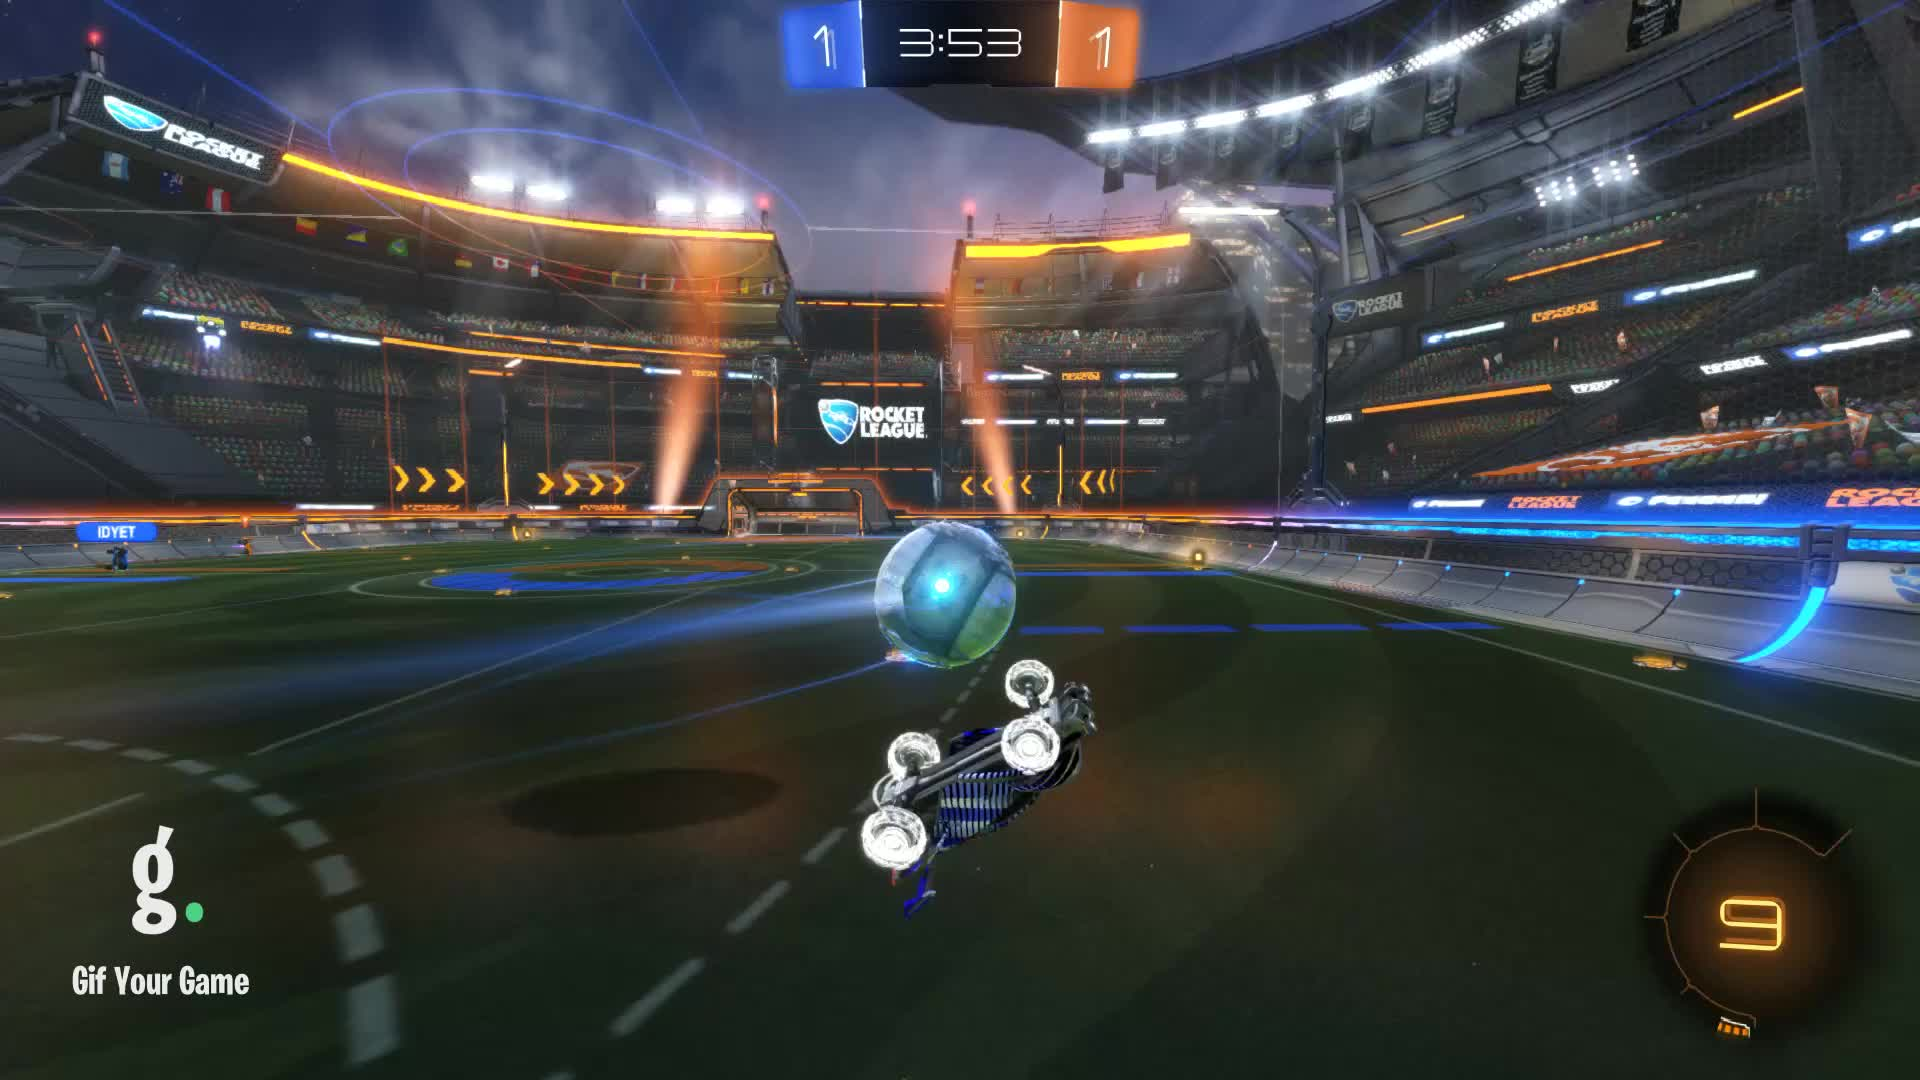 Gif Your Game, GifYourGame, Goal, Rocket League, RocketLeague, Zook, Goal 3: Zook GIFs